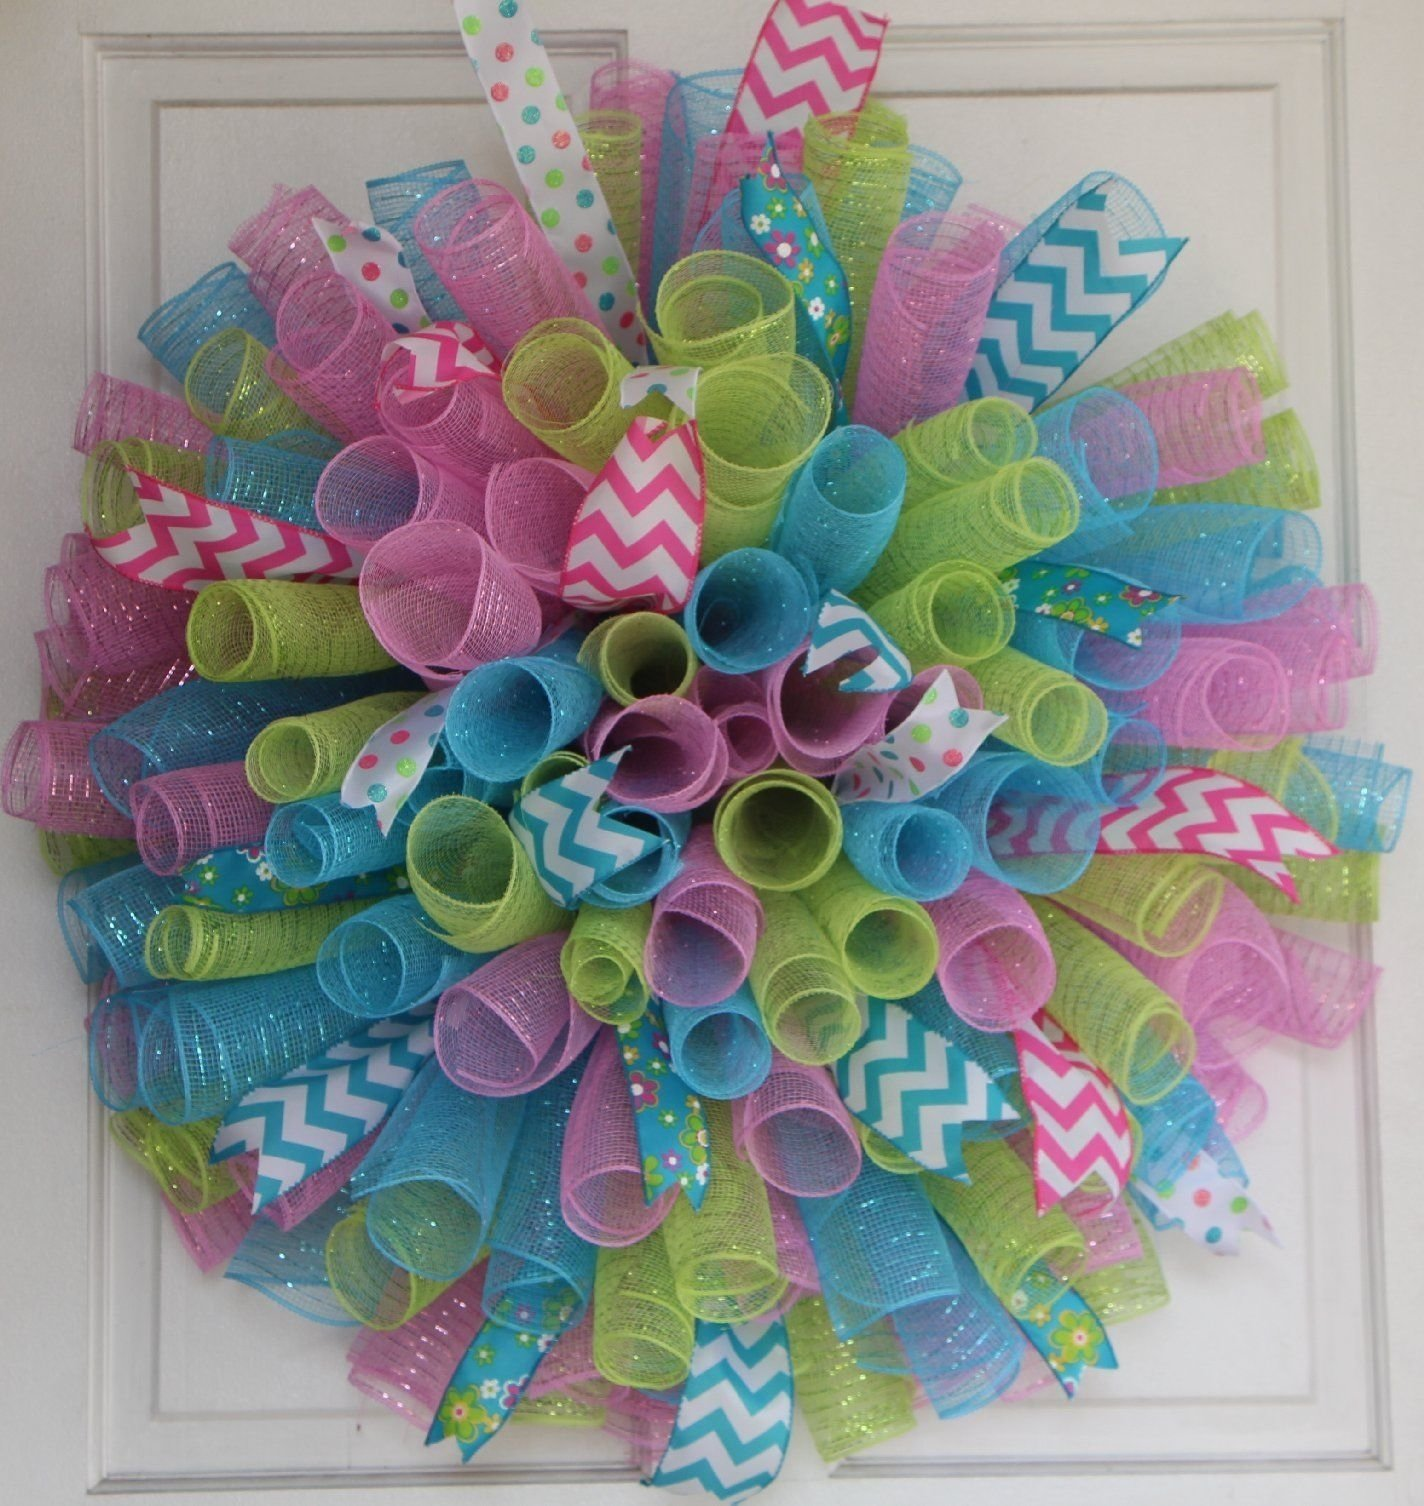 10 Cute Easter Deco Mesh Wreath Ideas spring mesh wreaths ideas home design www spikemilliganlegacy